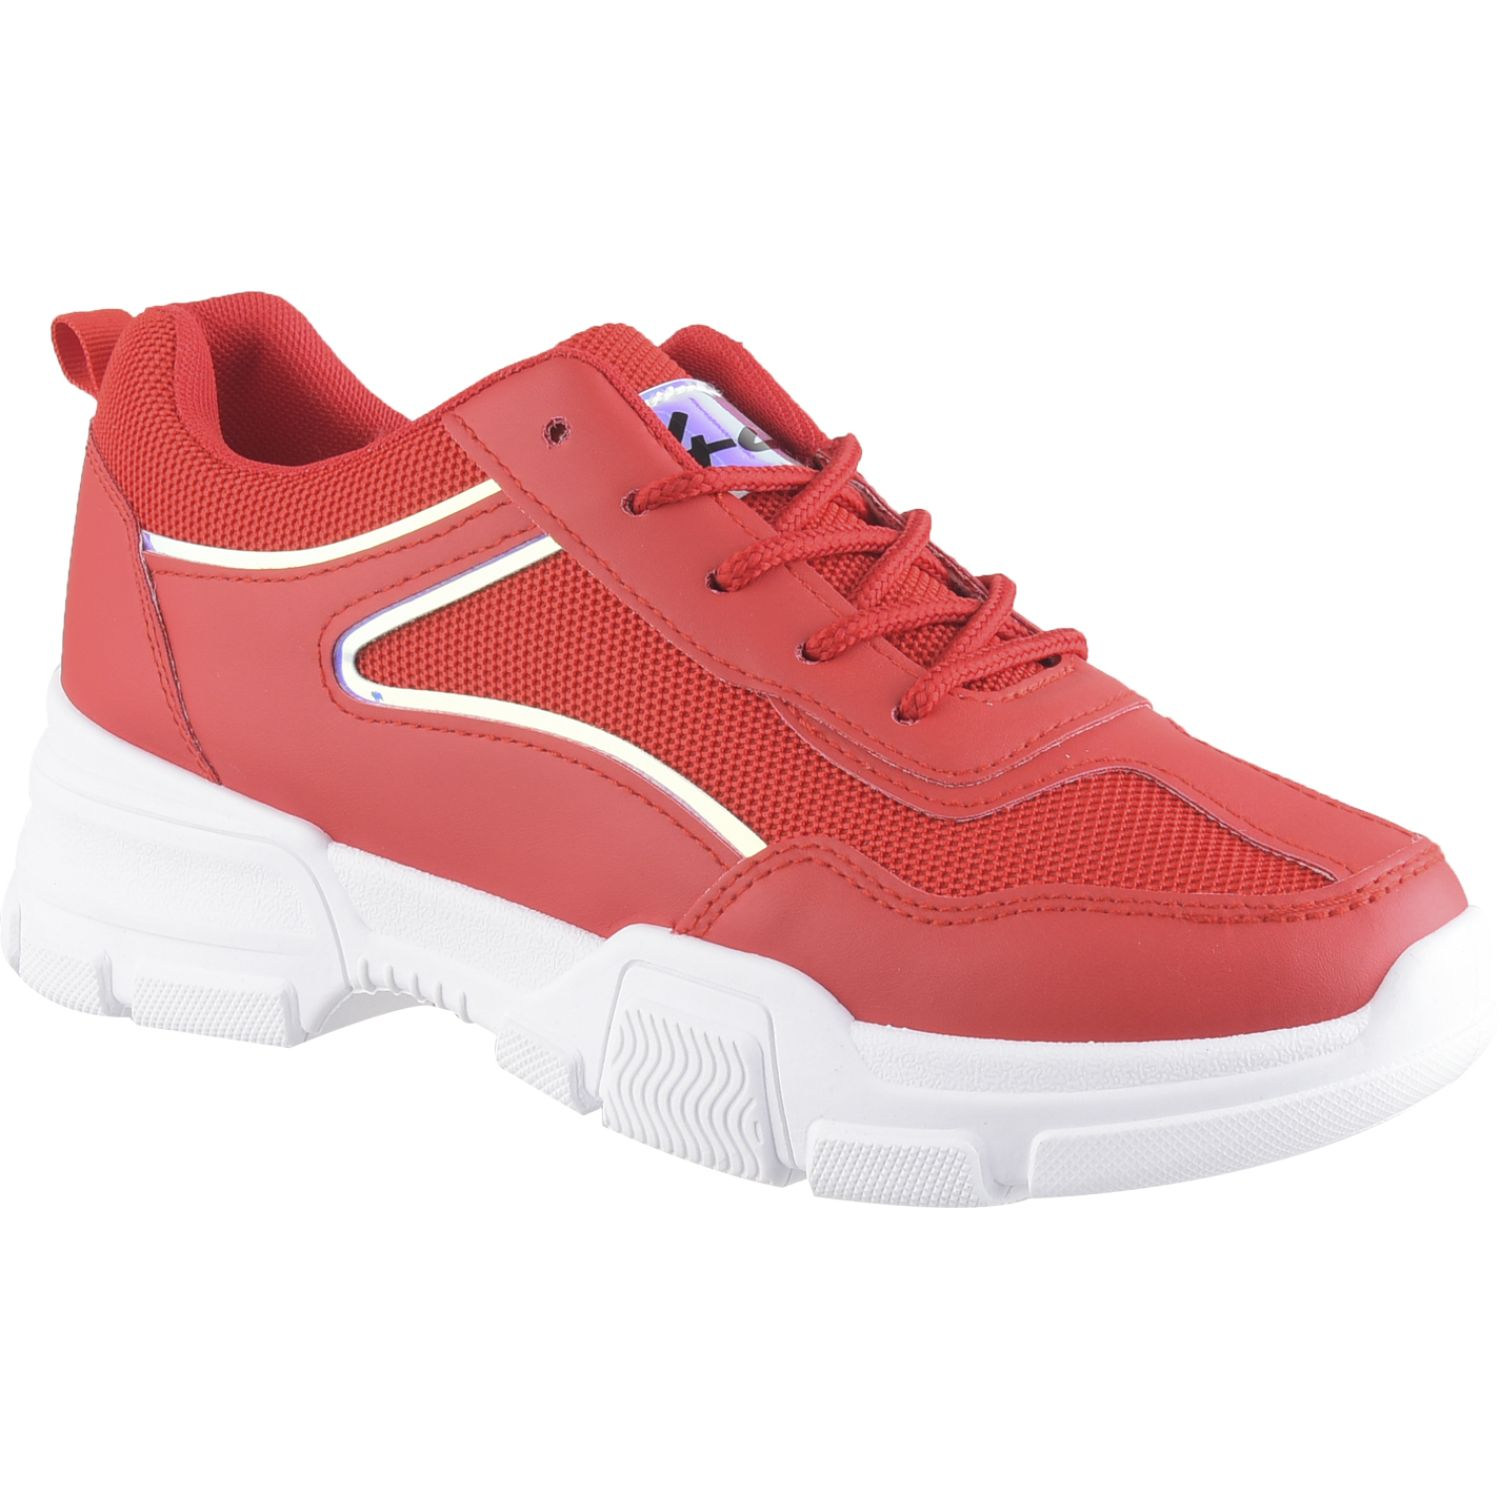 Platanitos z 120 Rojo Zapatillas Fashion